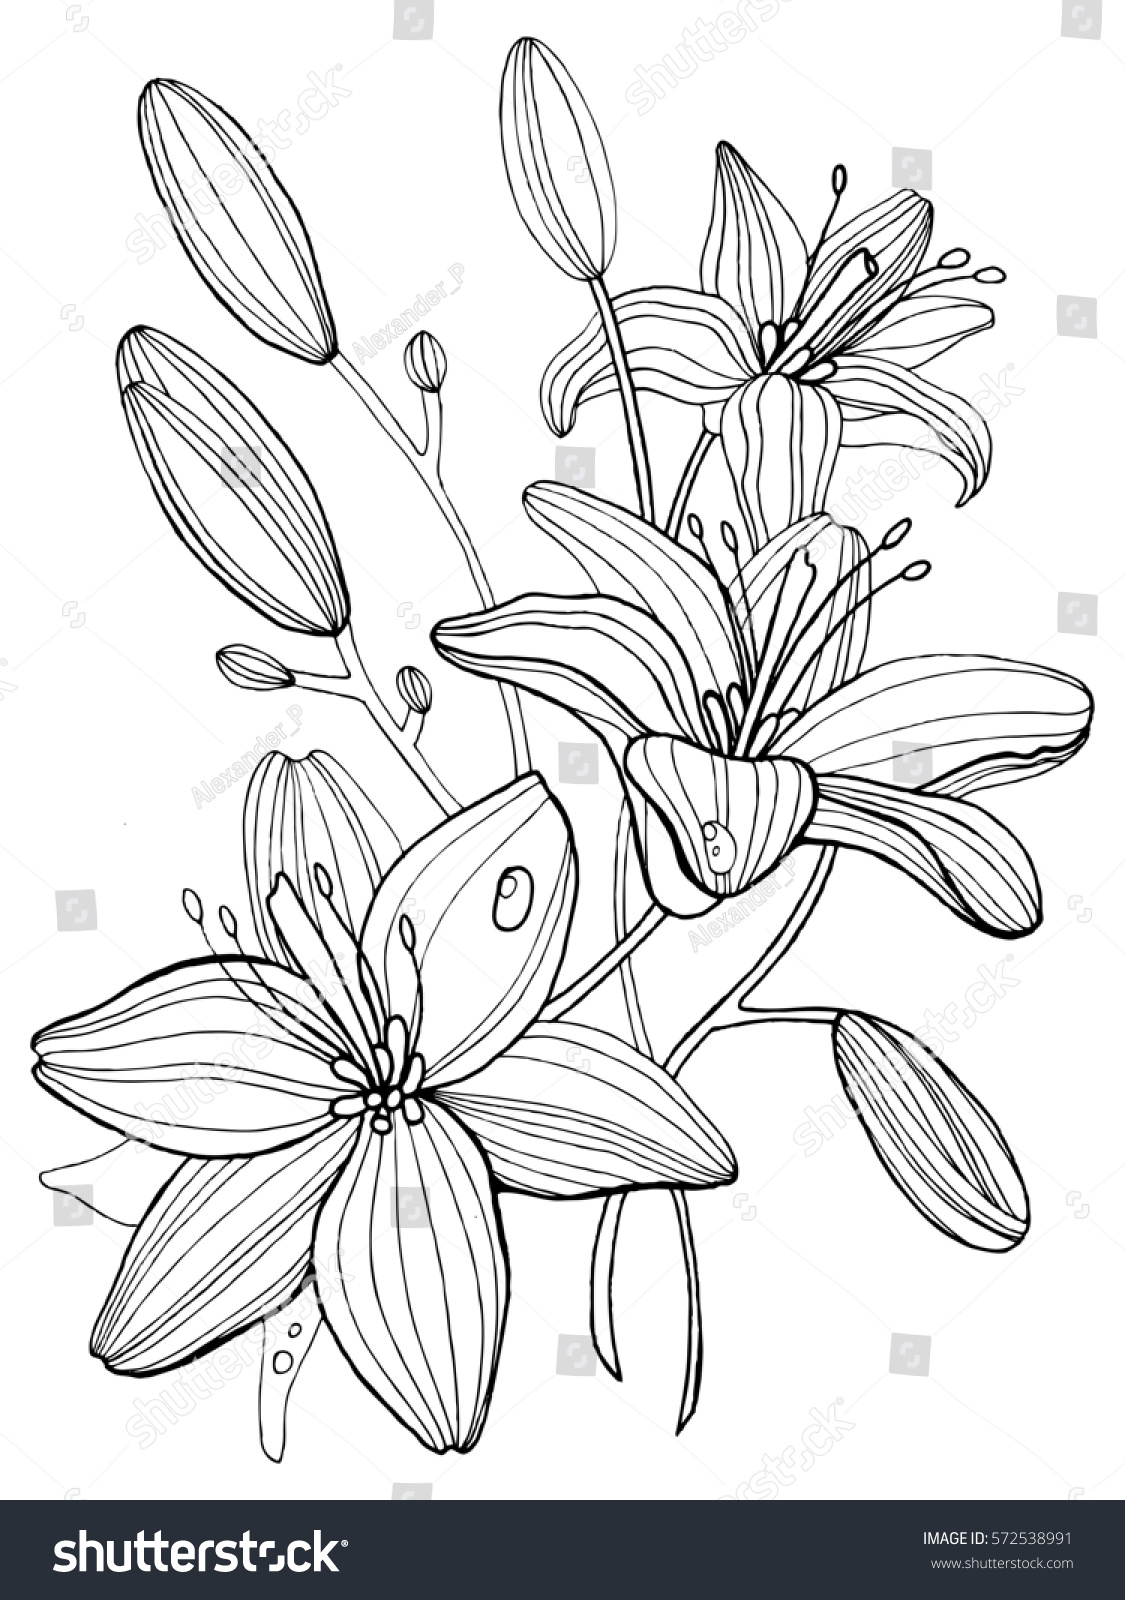 Lily flowers coloring book raster illustration stock illustration lily flowers coloring book raster illustration anti stress coloring for adult tattoo stencil izmirmasajfo